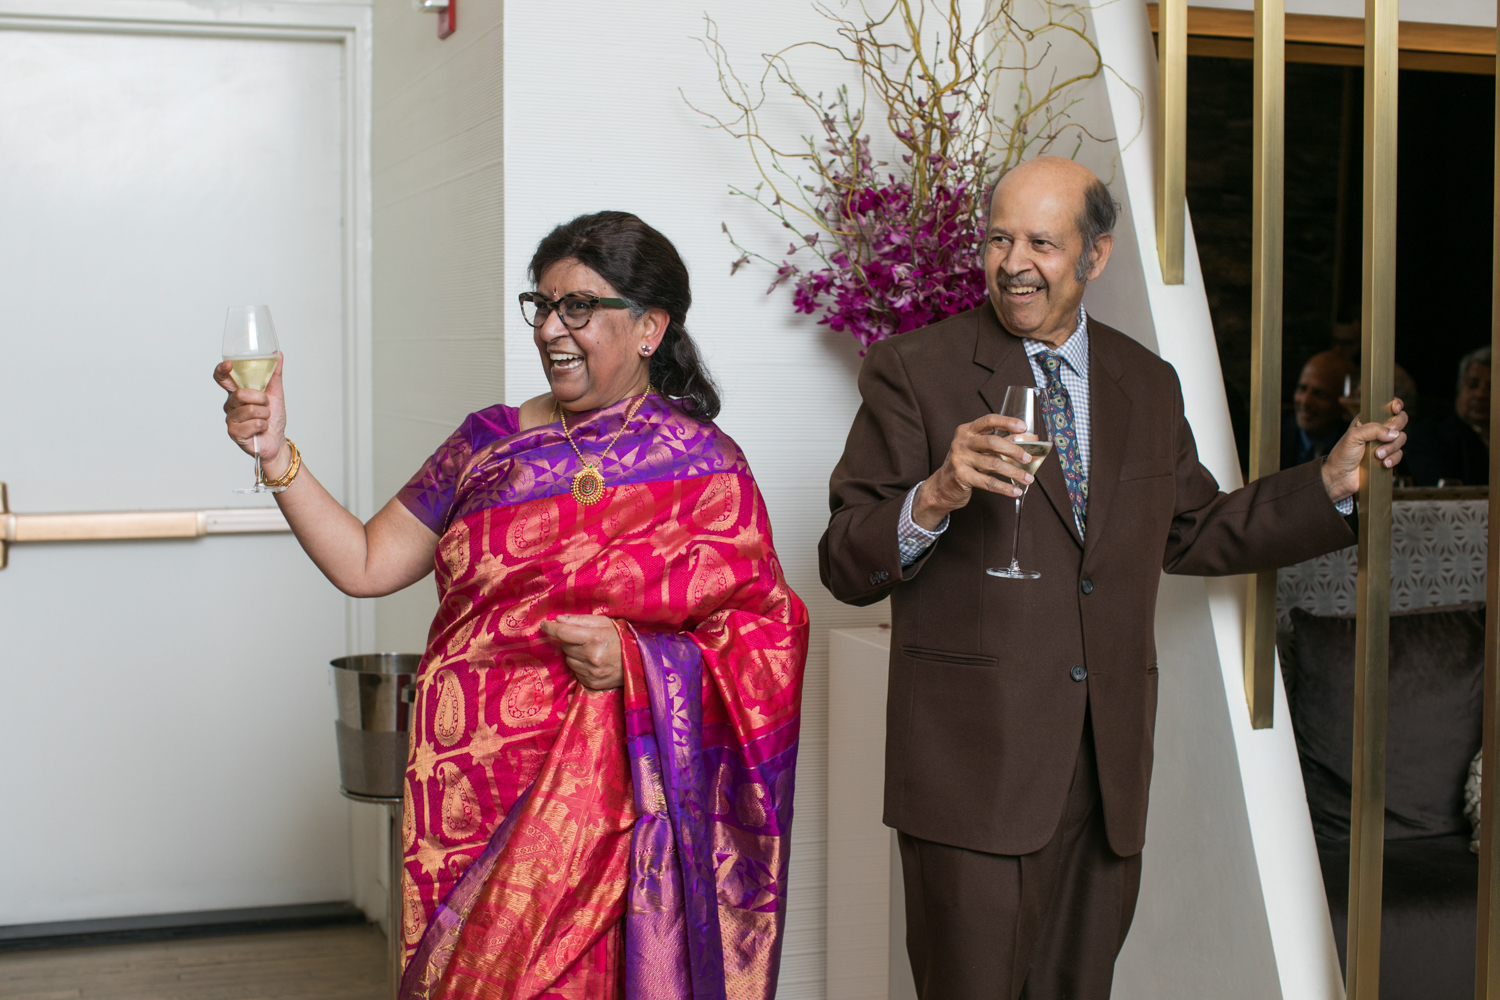 Family toasting at the wedding ceremony.